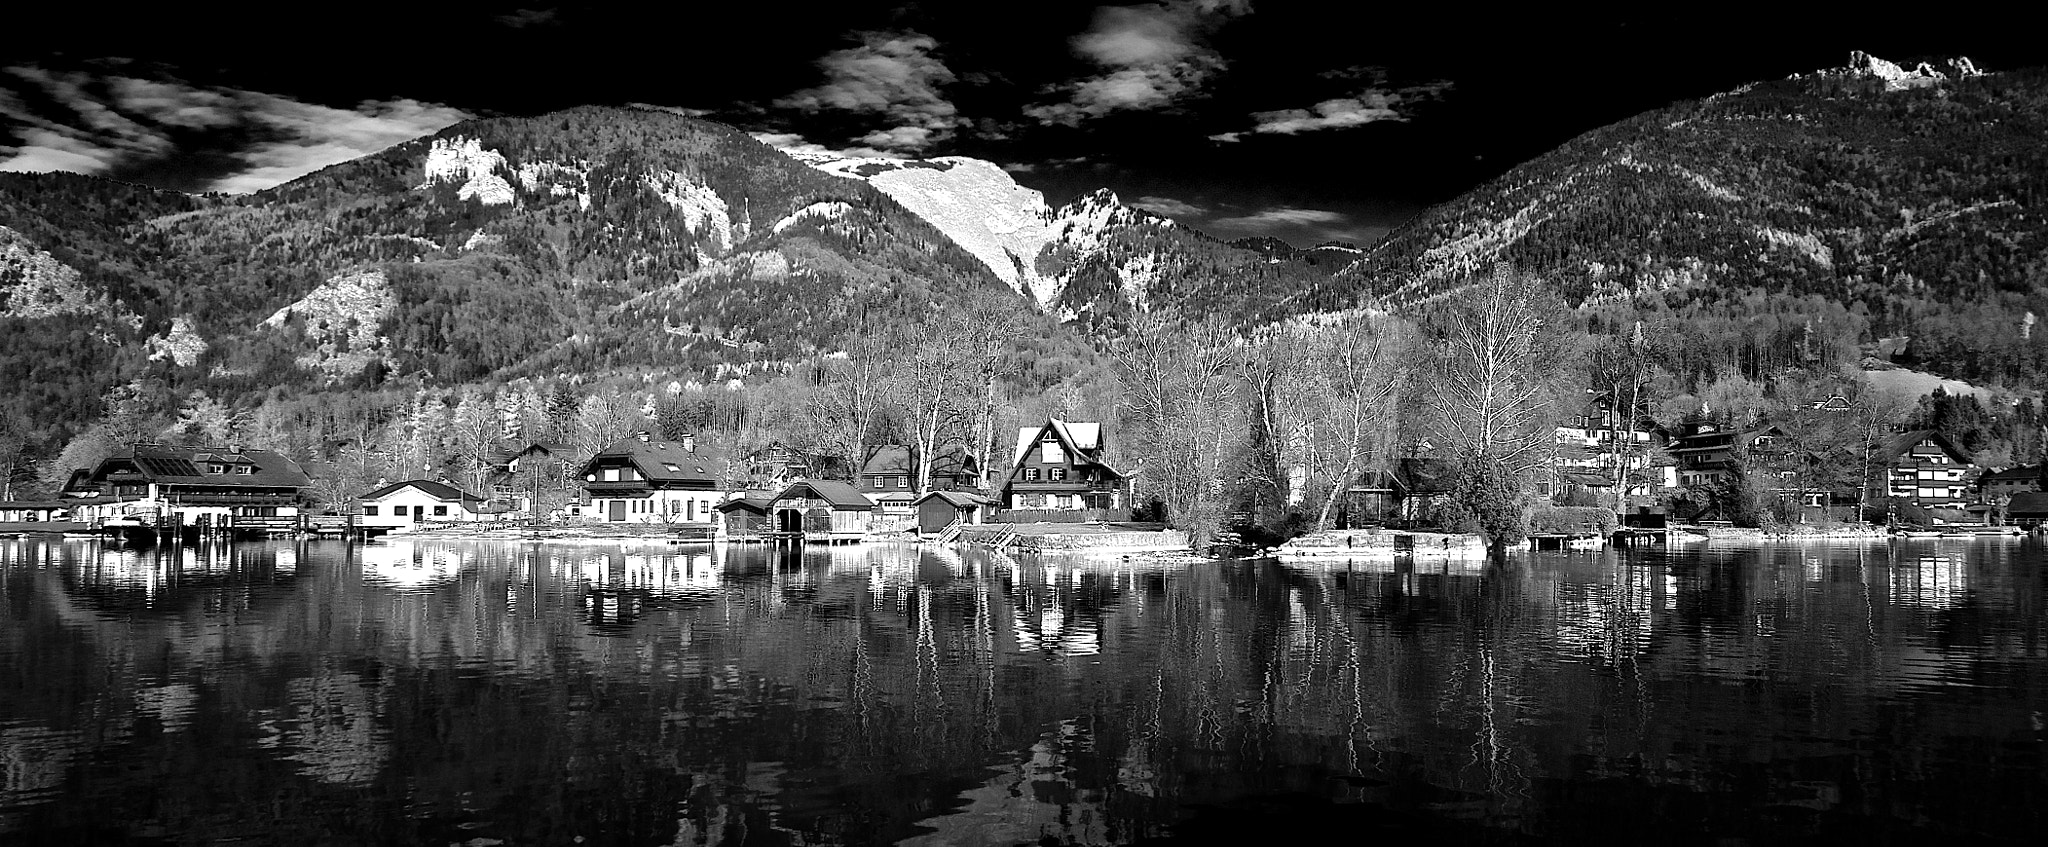 Photograph Salzkammergut by Jeong-Keun Kim on 500px